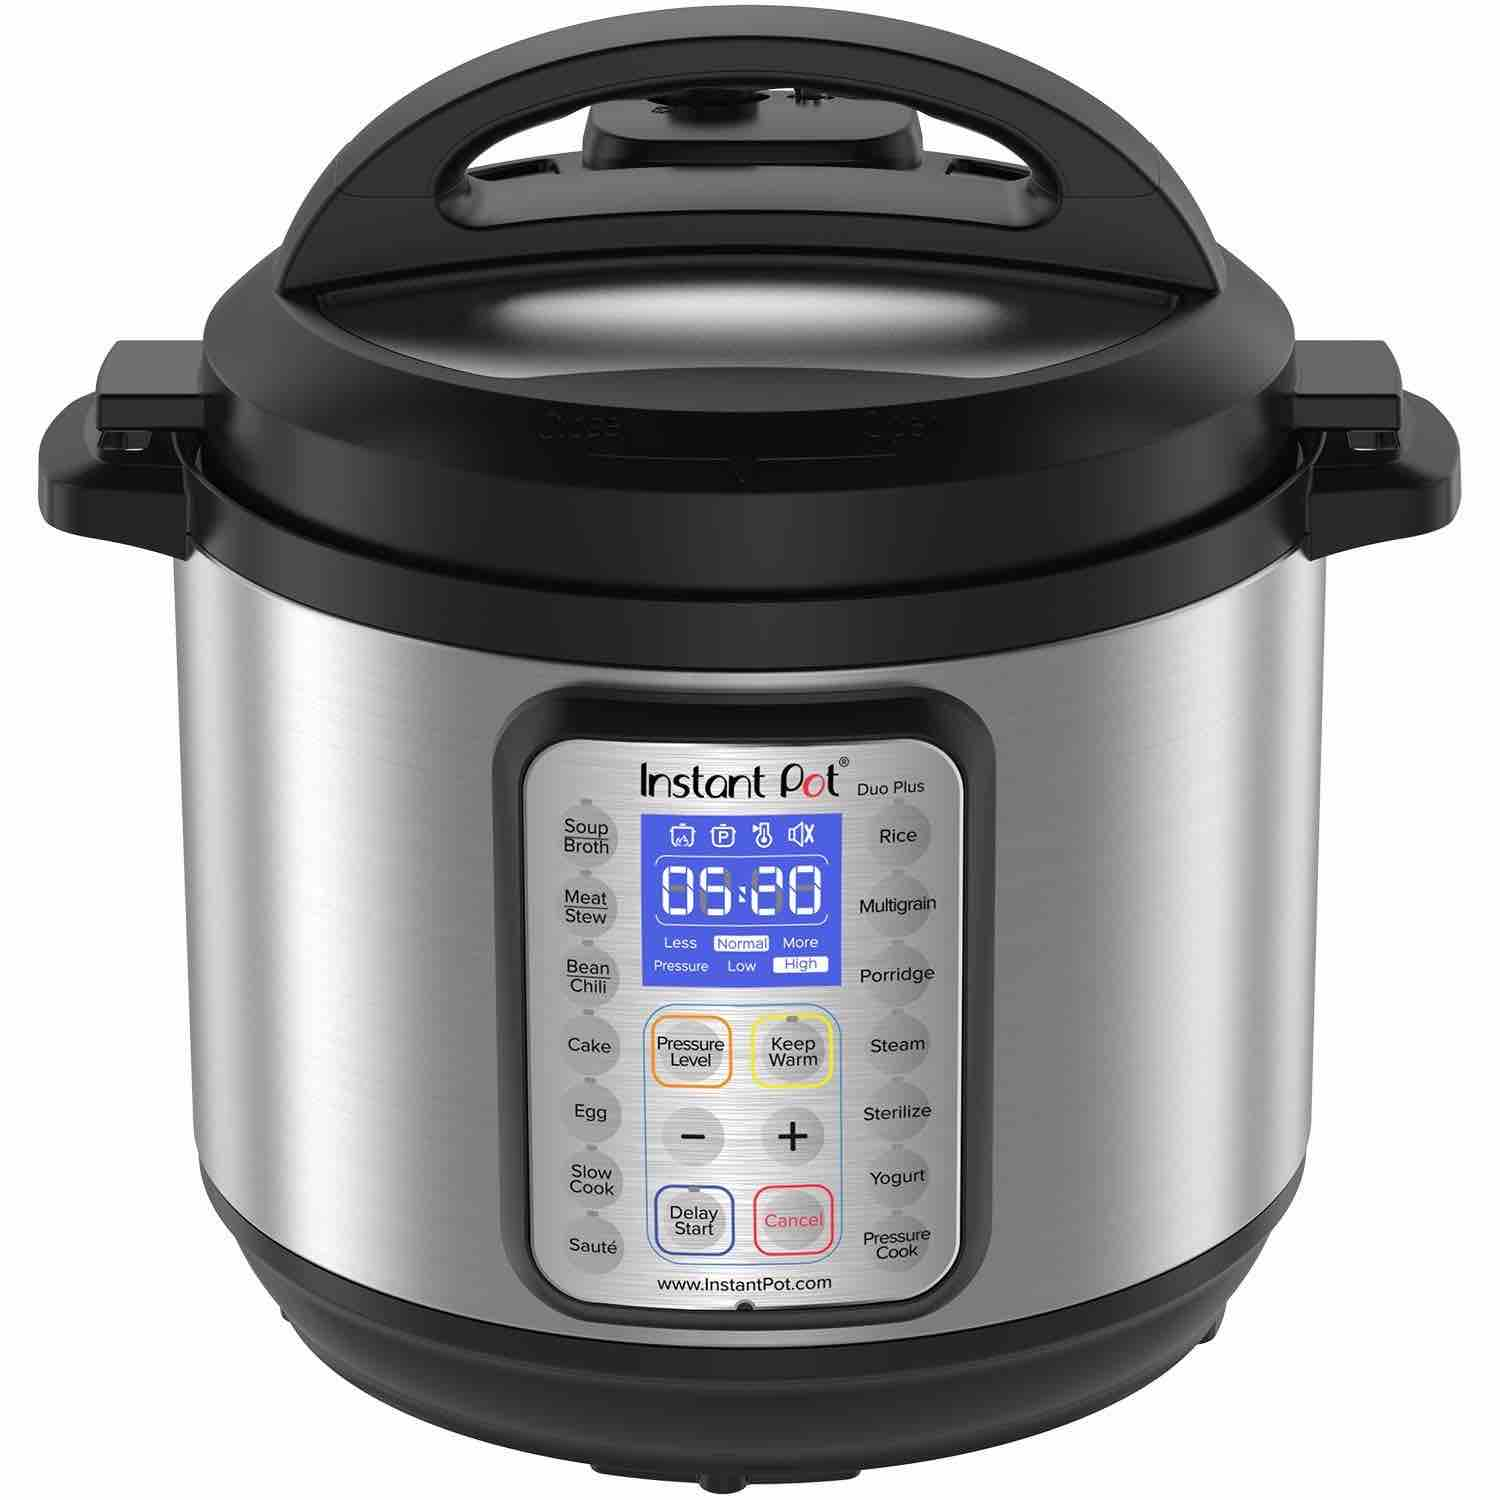 New Instant Pot Duo Plus LCD Screen